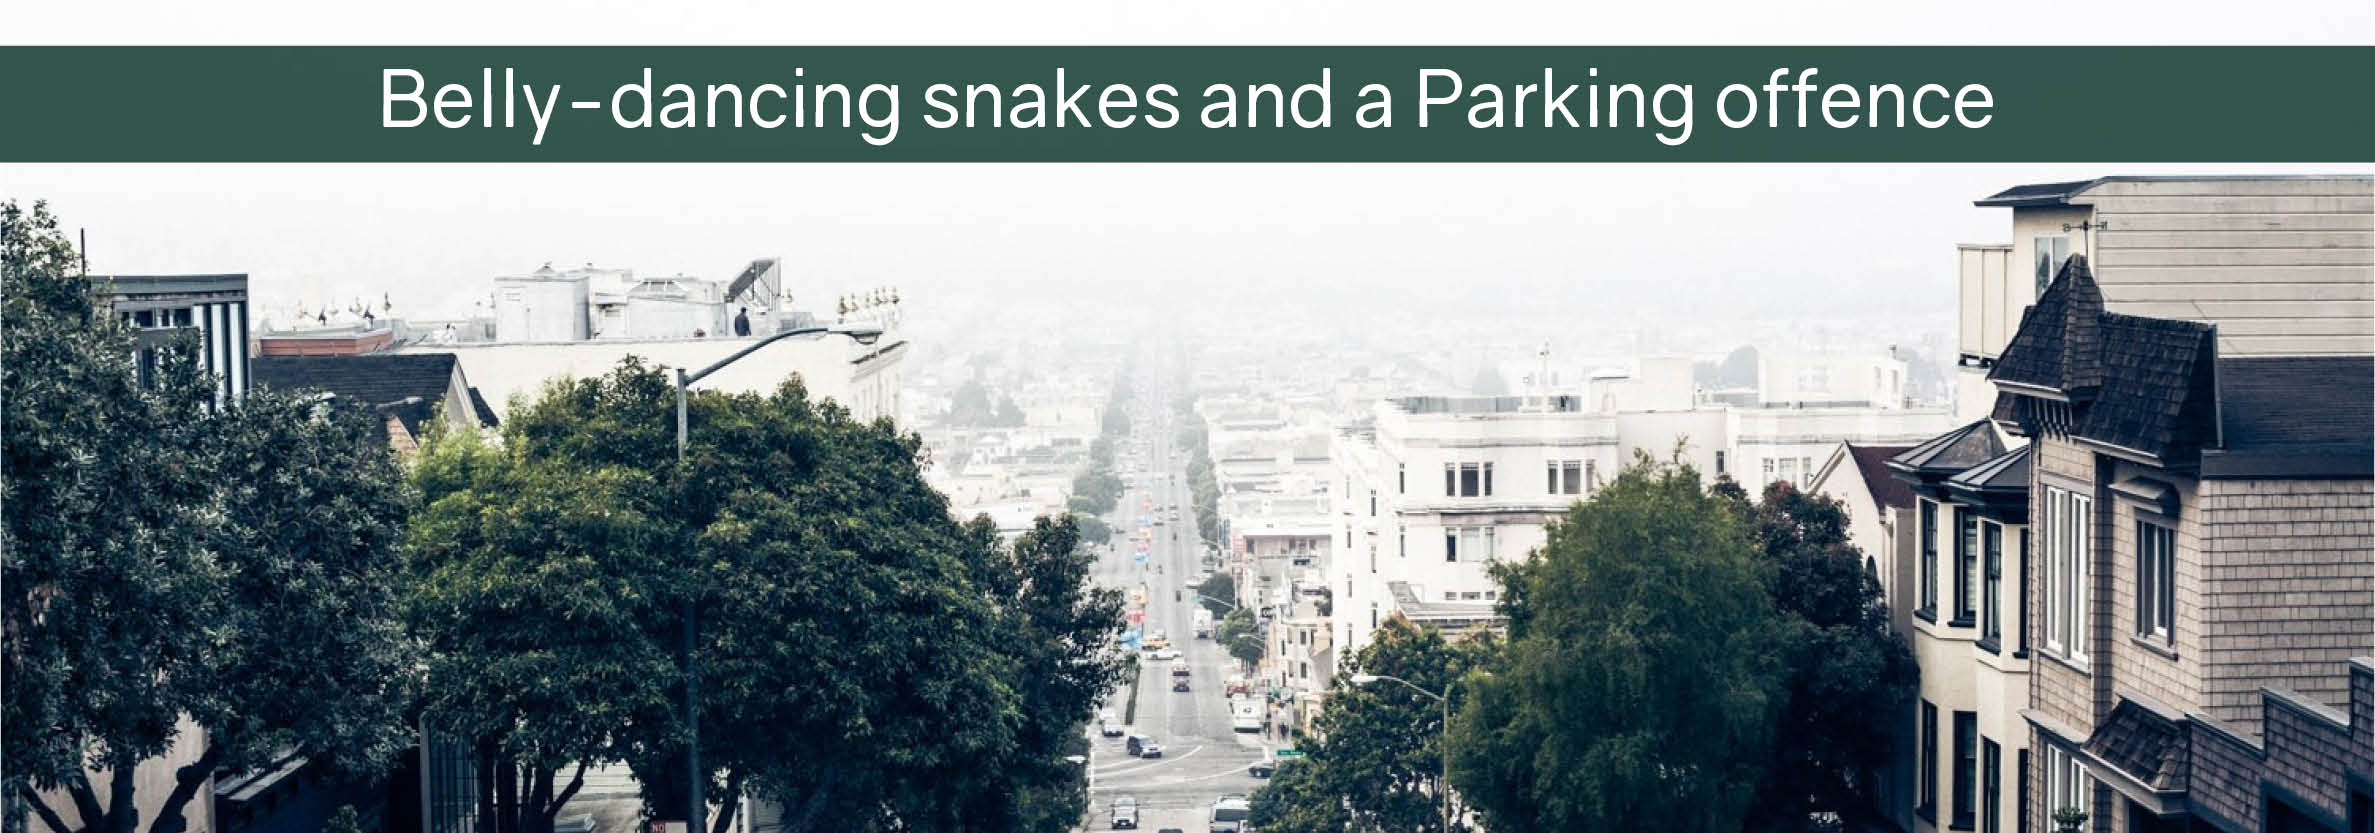 Belly-dancing snakes and a Parking offence main blog image